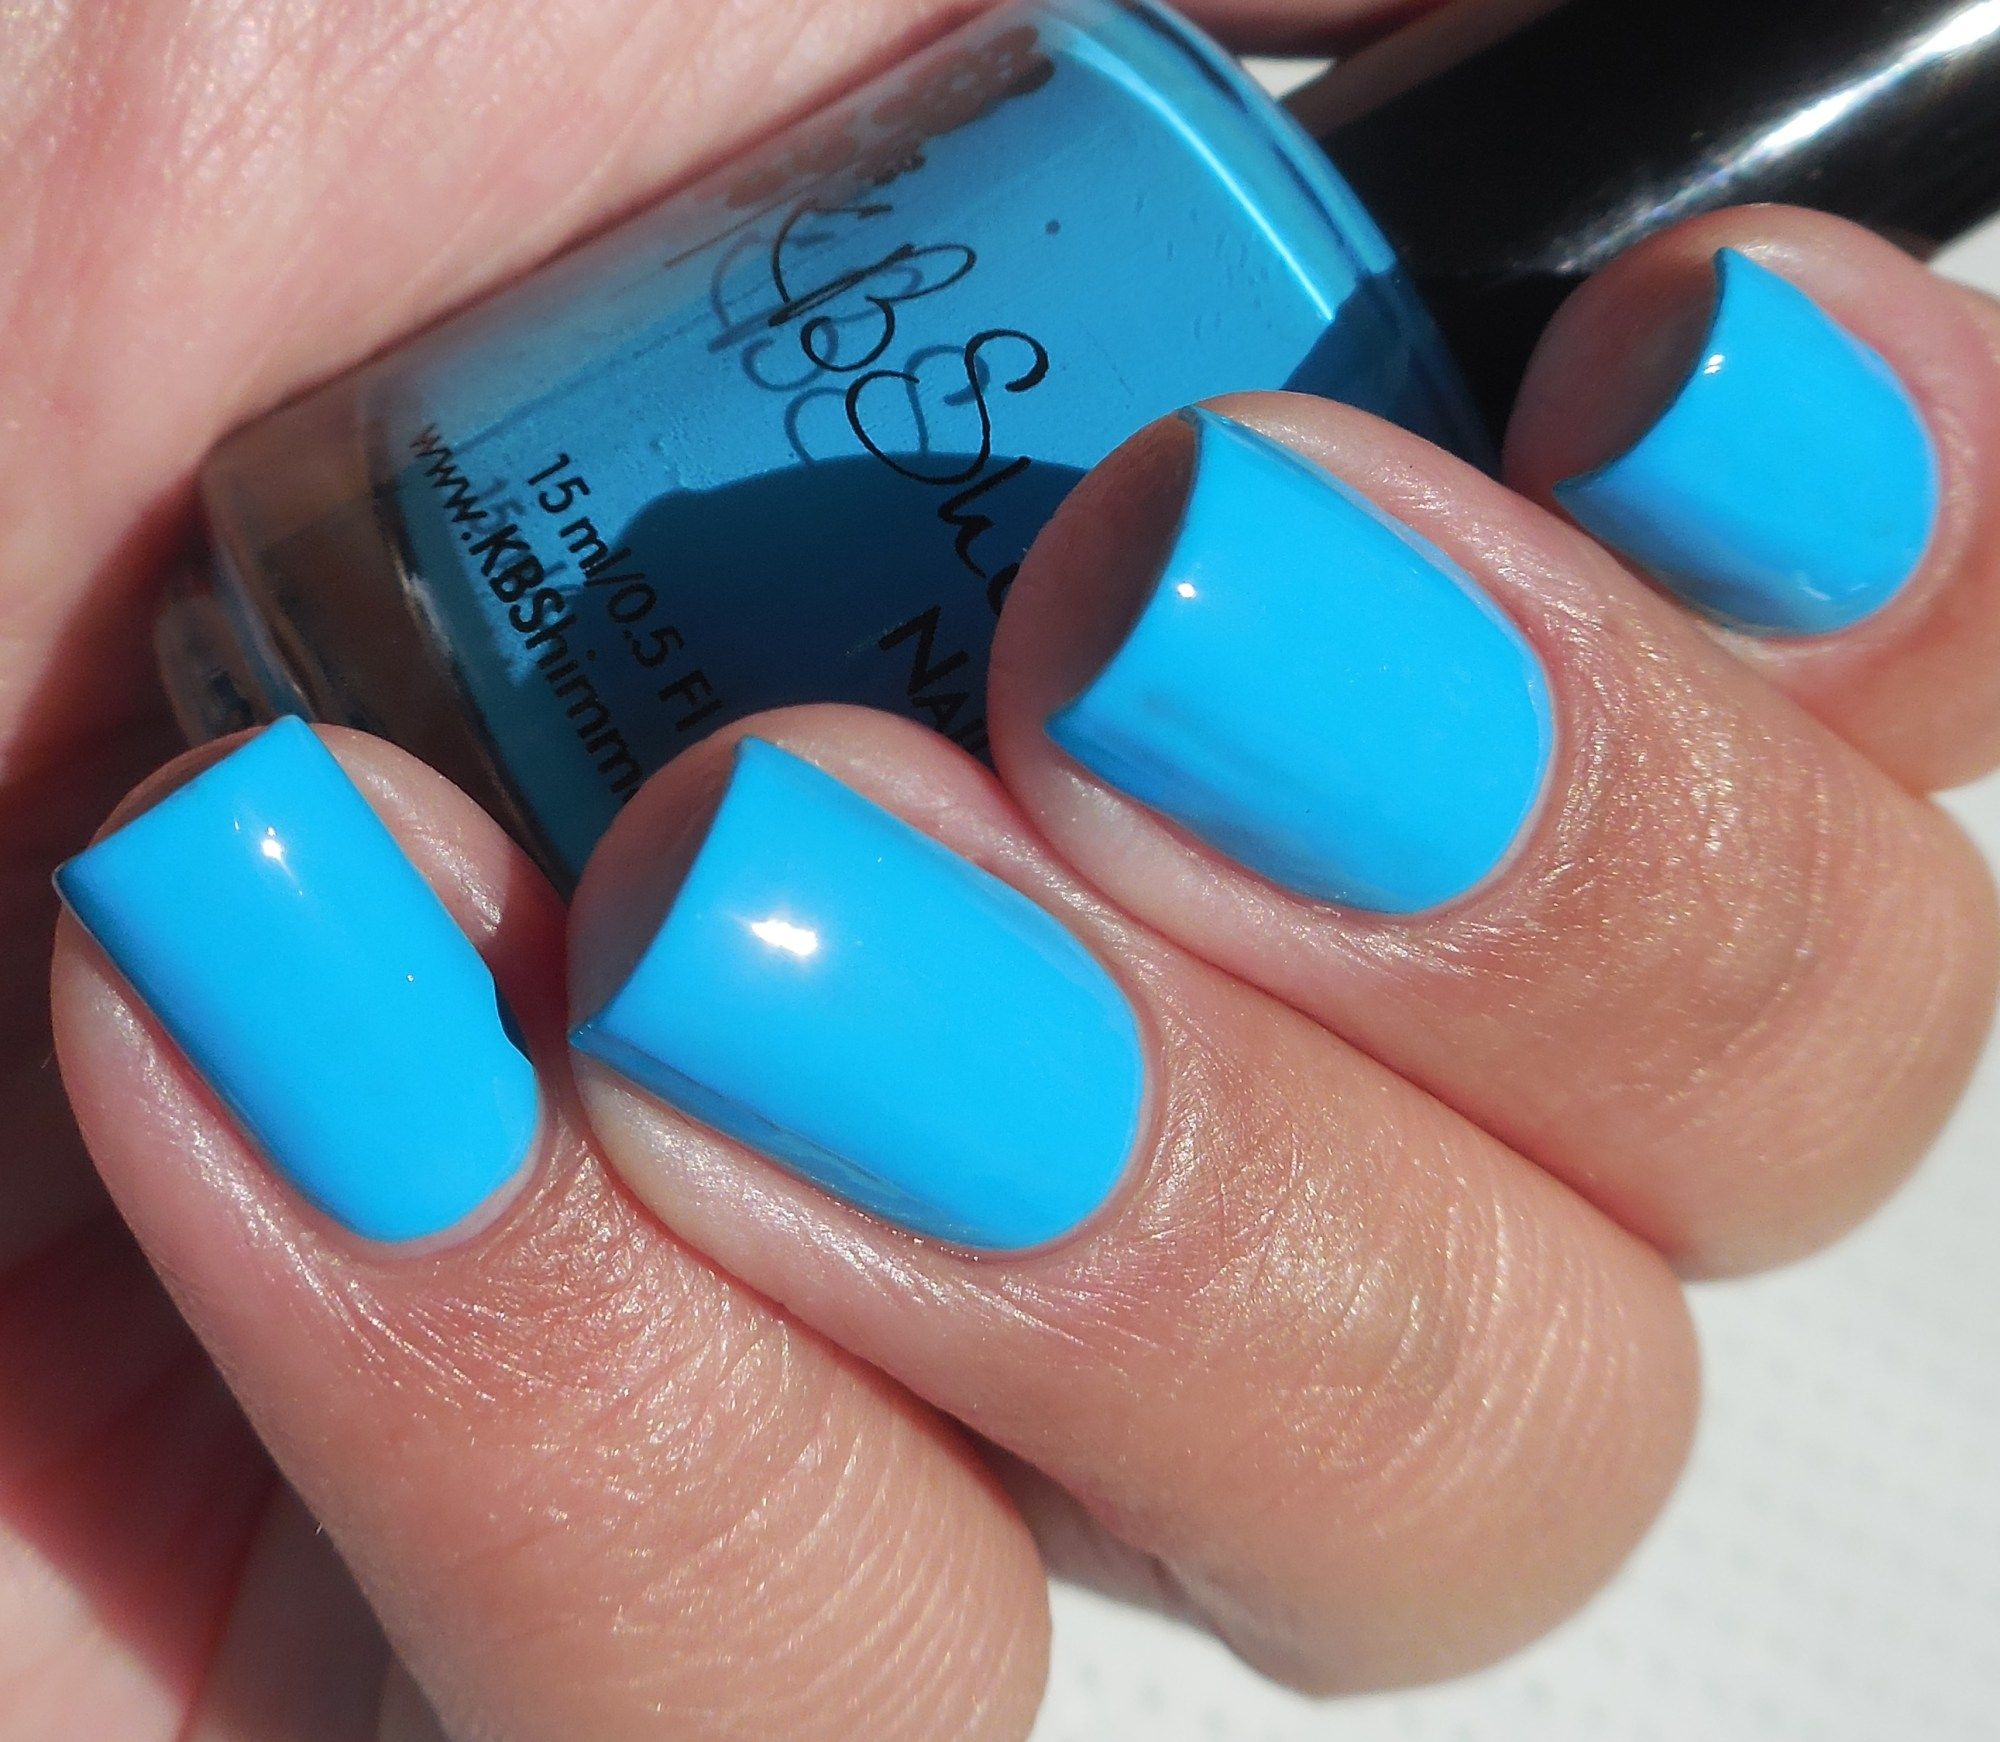 KBShimmer: 💙 Double Pog Dare You 💙 ... a beautiful neon blue creme ...